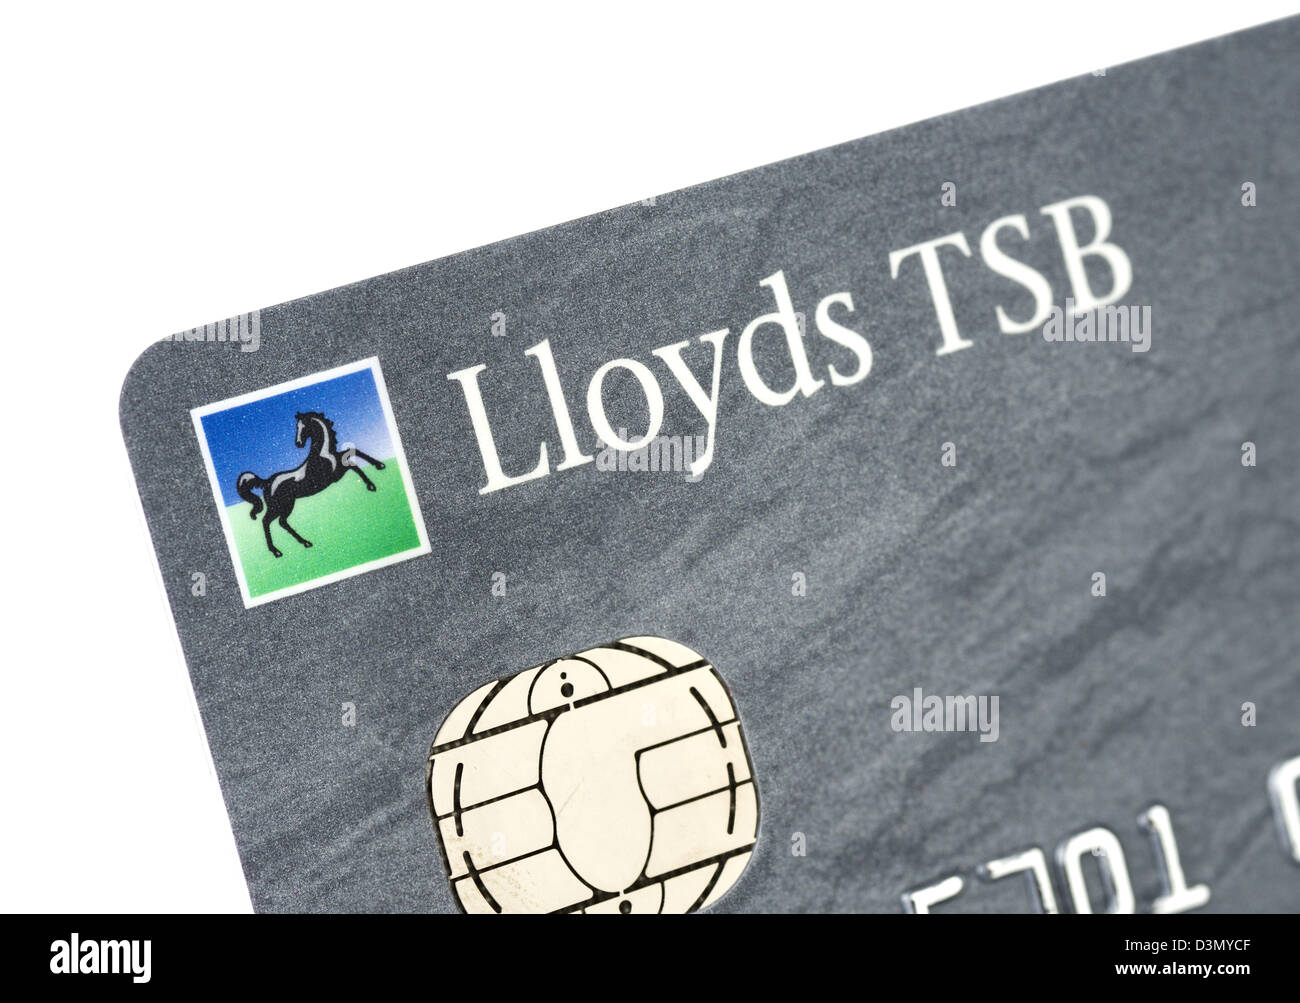 Lloyds tsb bank credit card issued in the uk stock photo royalty lloyds tsb bank credit card issued in the uk magicingreecefo Image collections